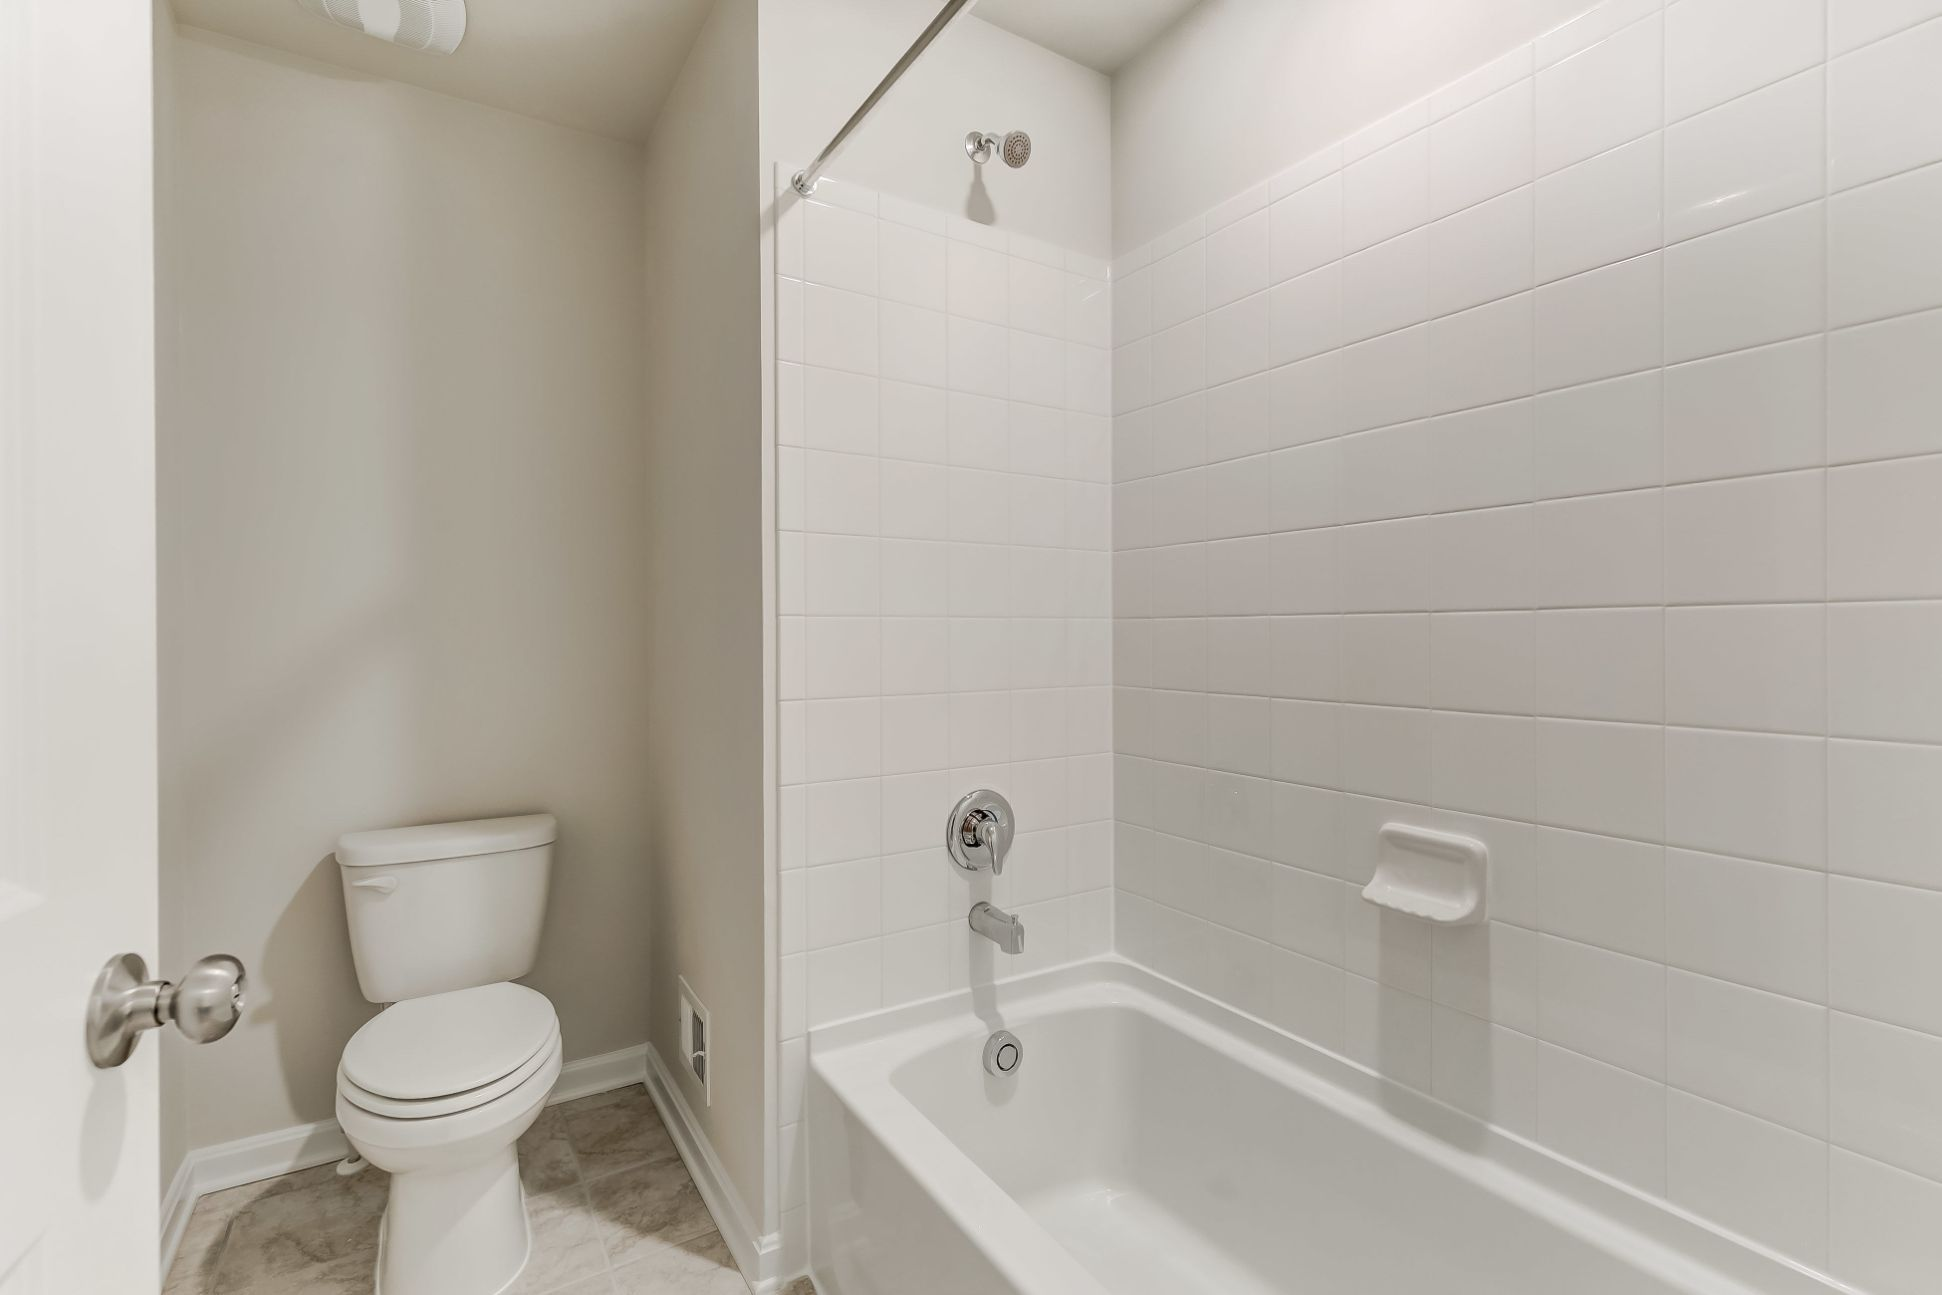 Bathroom featured in the WINDSOR By D.R. Horton in Baltimore, MD